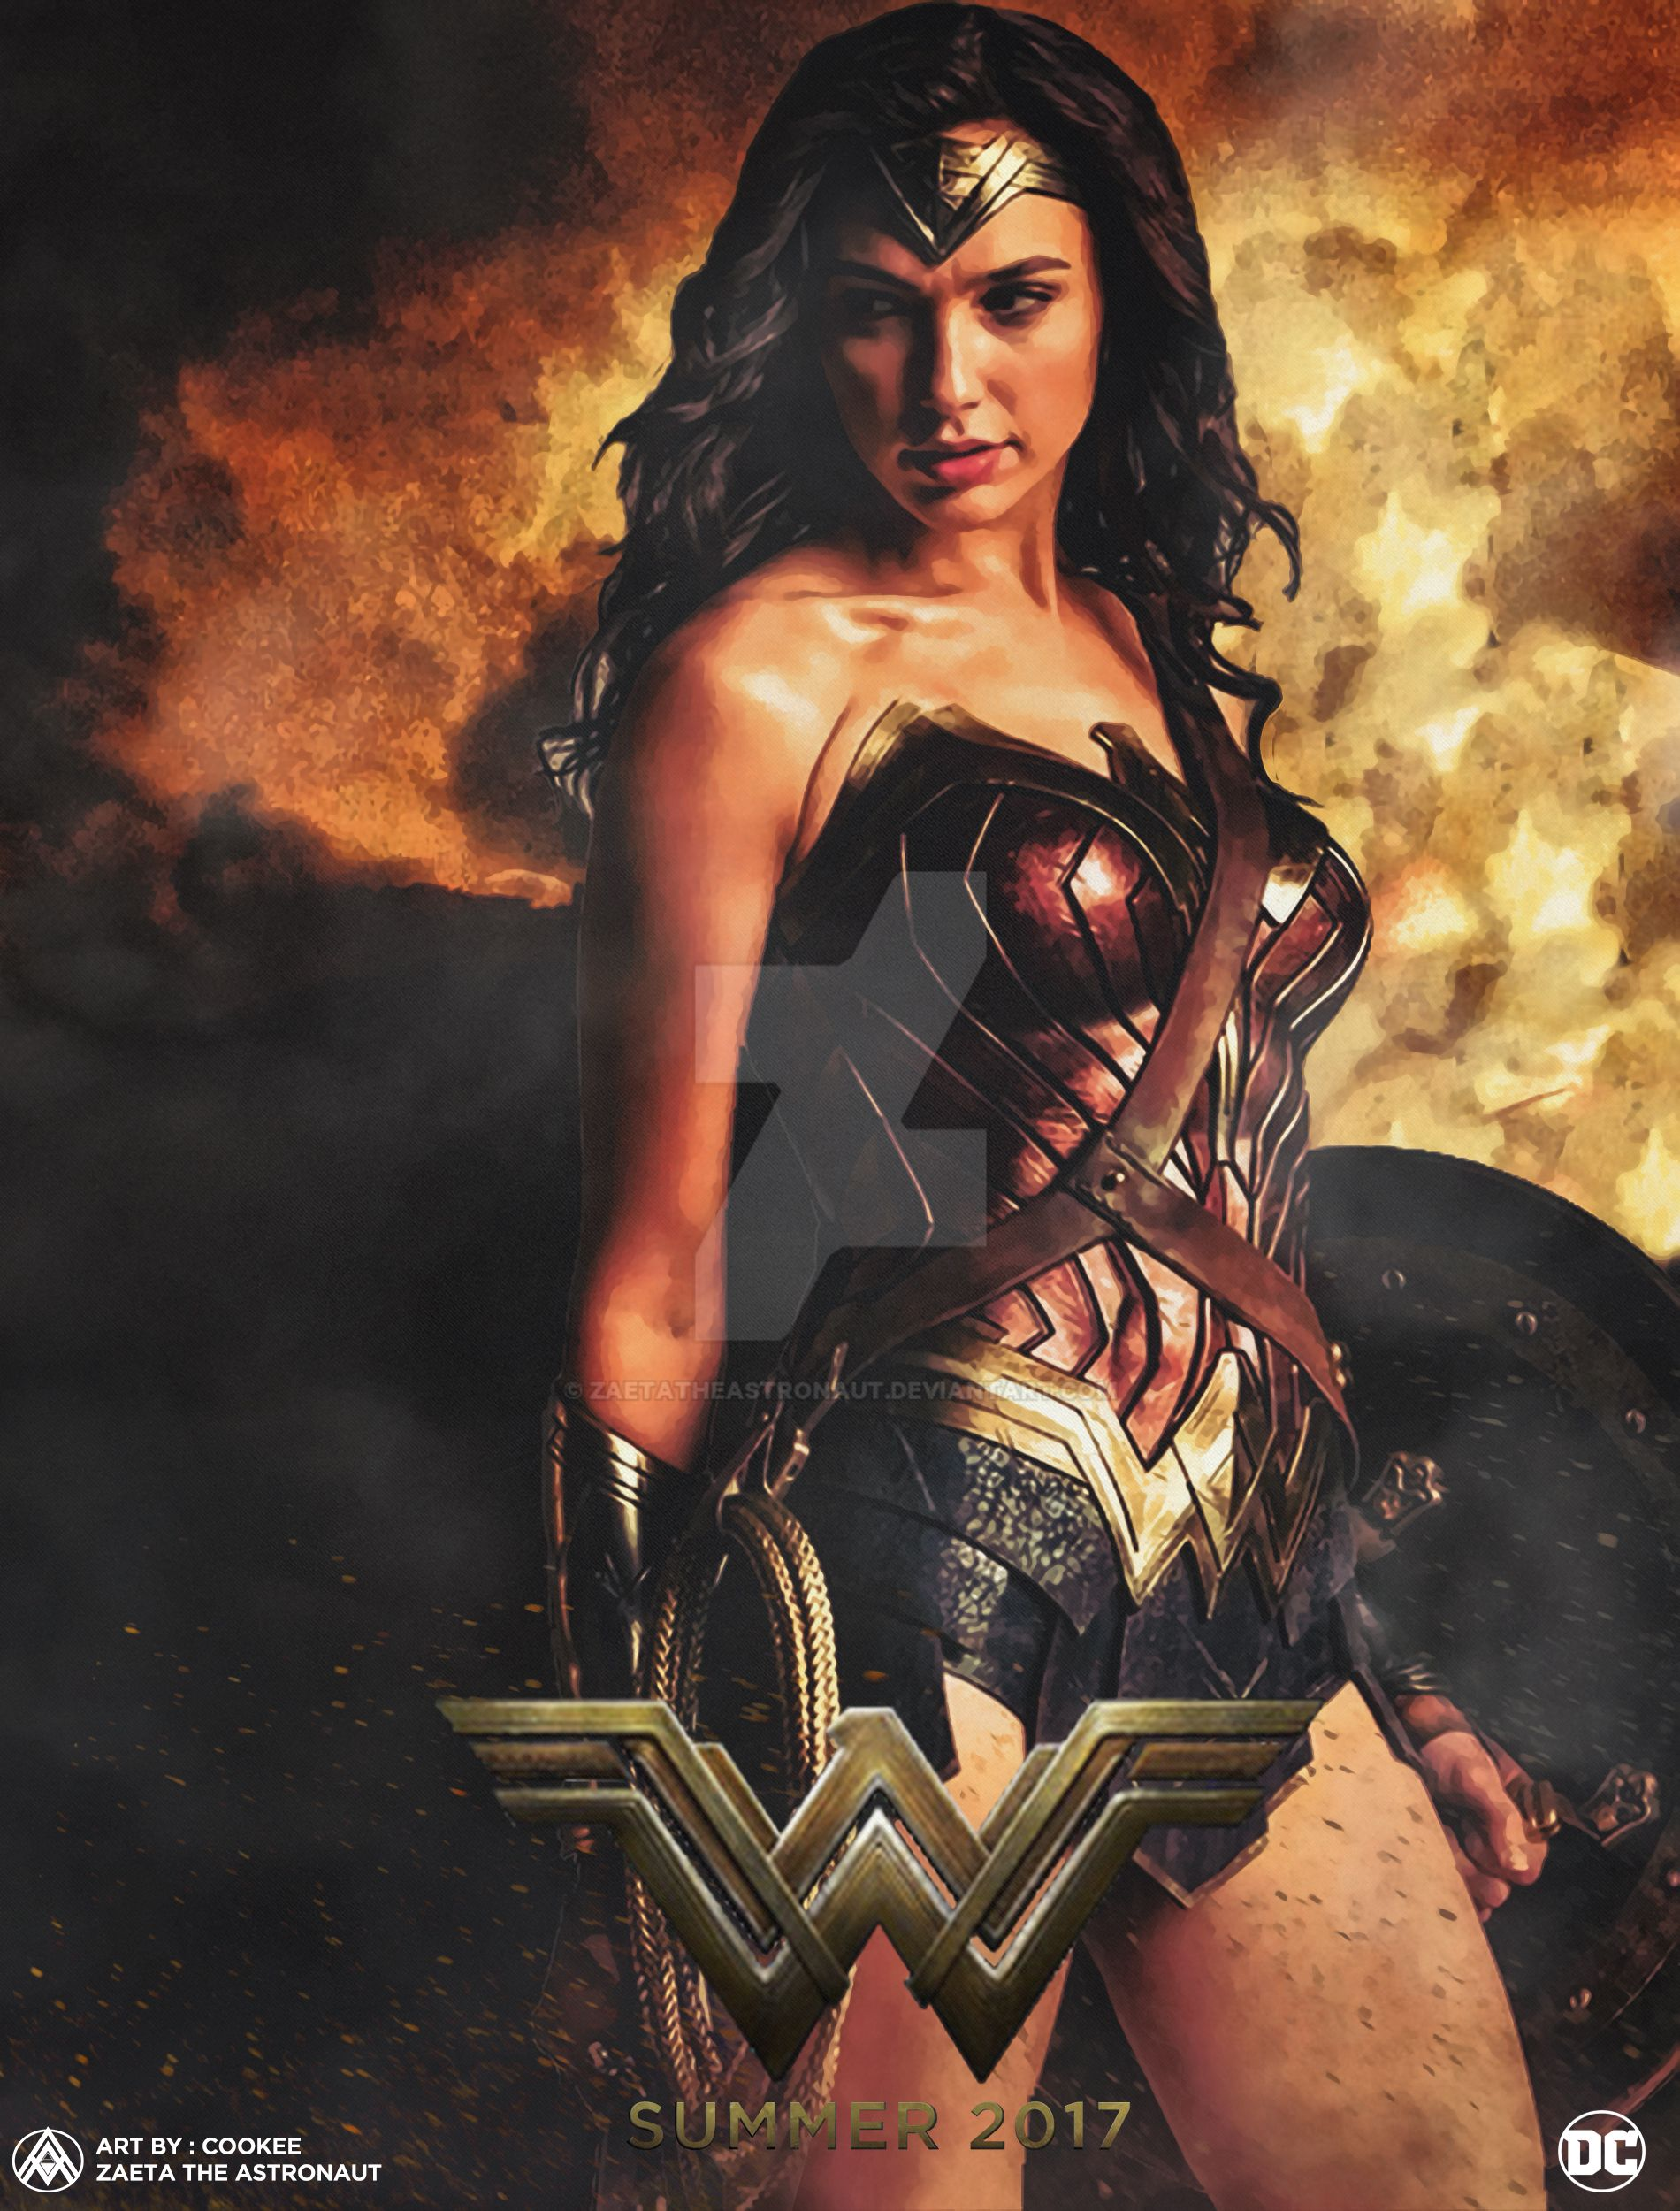 Wonder Woman Movie Poster By Zaetatheastronaut Da4n6o8